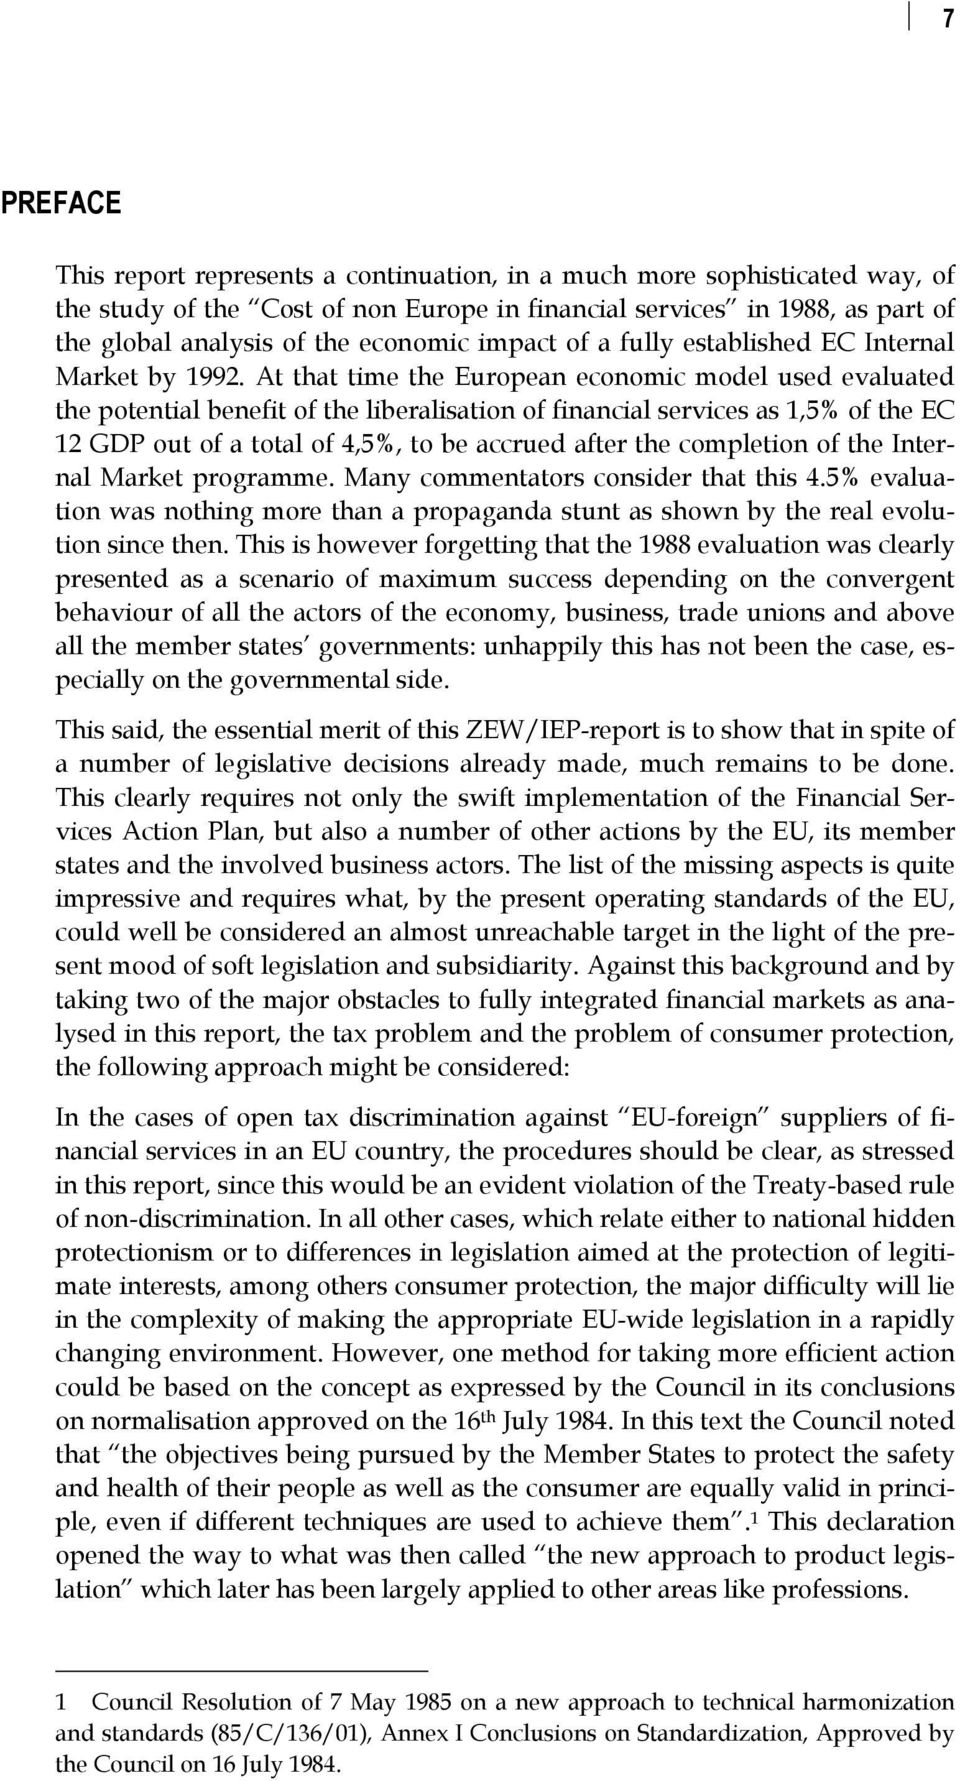 At that time the European economic model used evaluated the potential benefit of the liberalisation of financial services as 1,5% of the EC 12 GDP out of a total of 4,5%, to be accrued after the